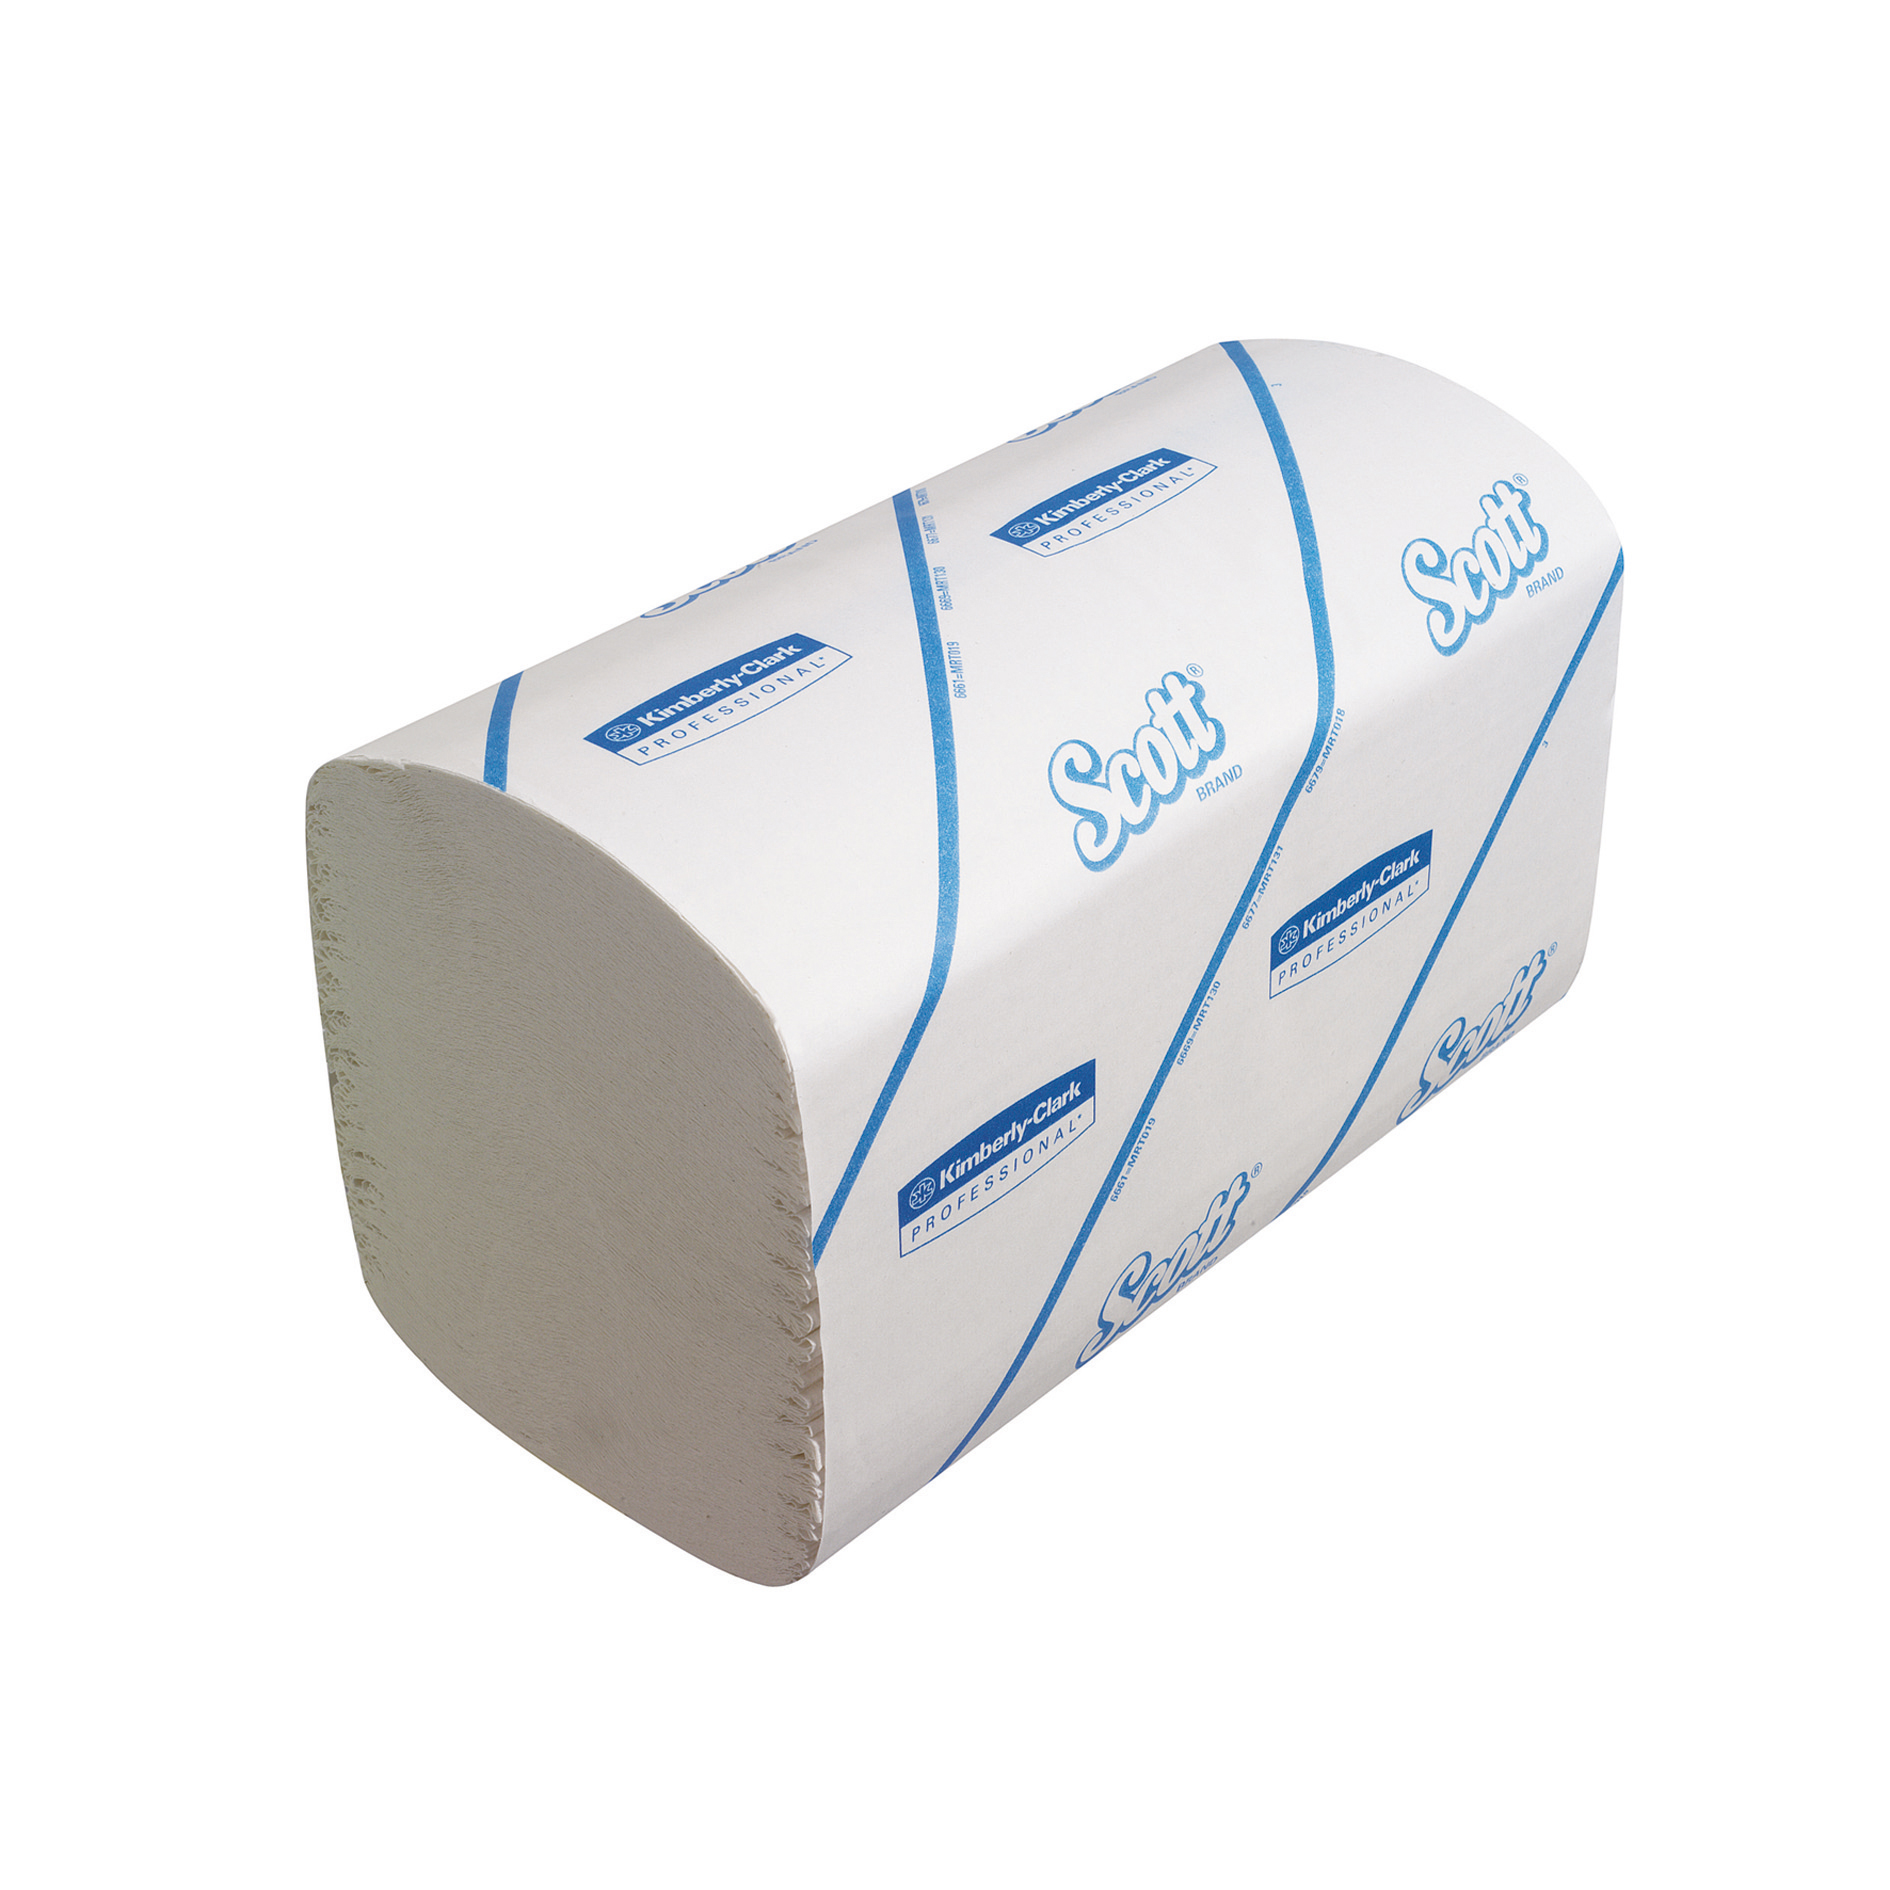 Scott Performance Hand Towels 1 Ply 210x215mm 274 Towels per Sleeve Ref 6689 Pack 15 Sleeves